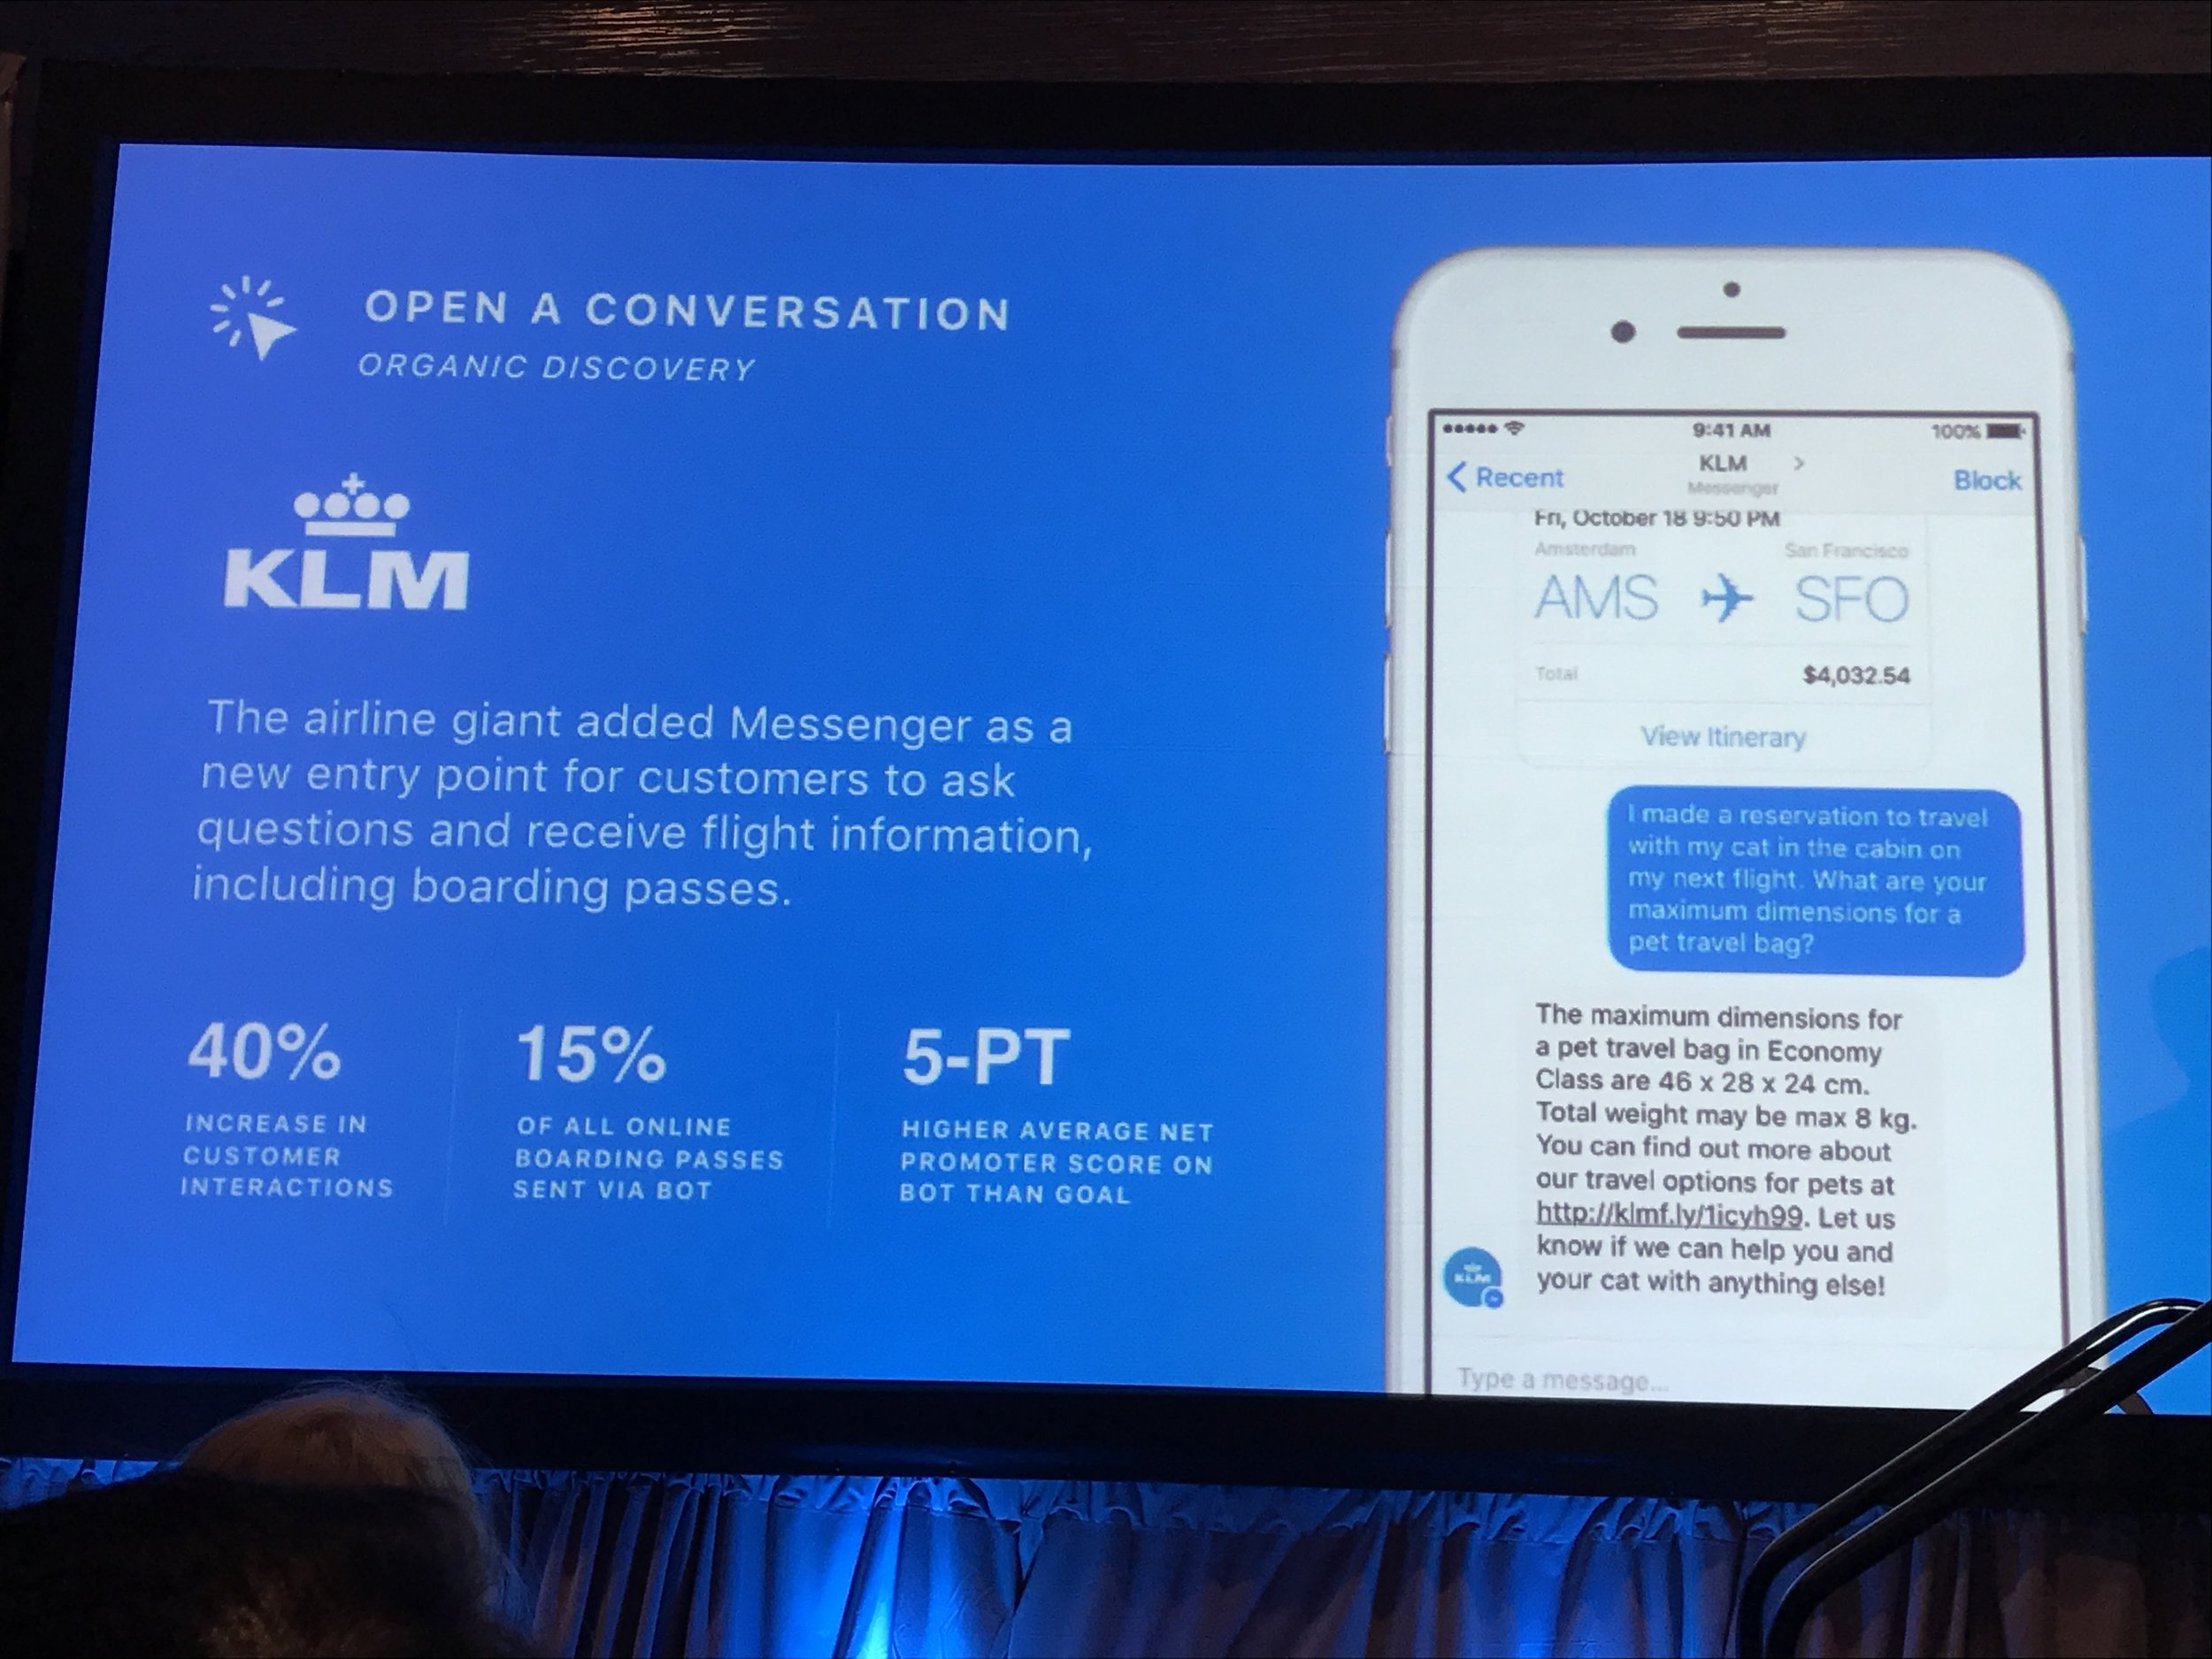 KLM uses Facebook's Messenger and a bot to issue more boarding passes  and  build relationships.